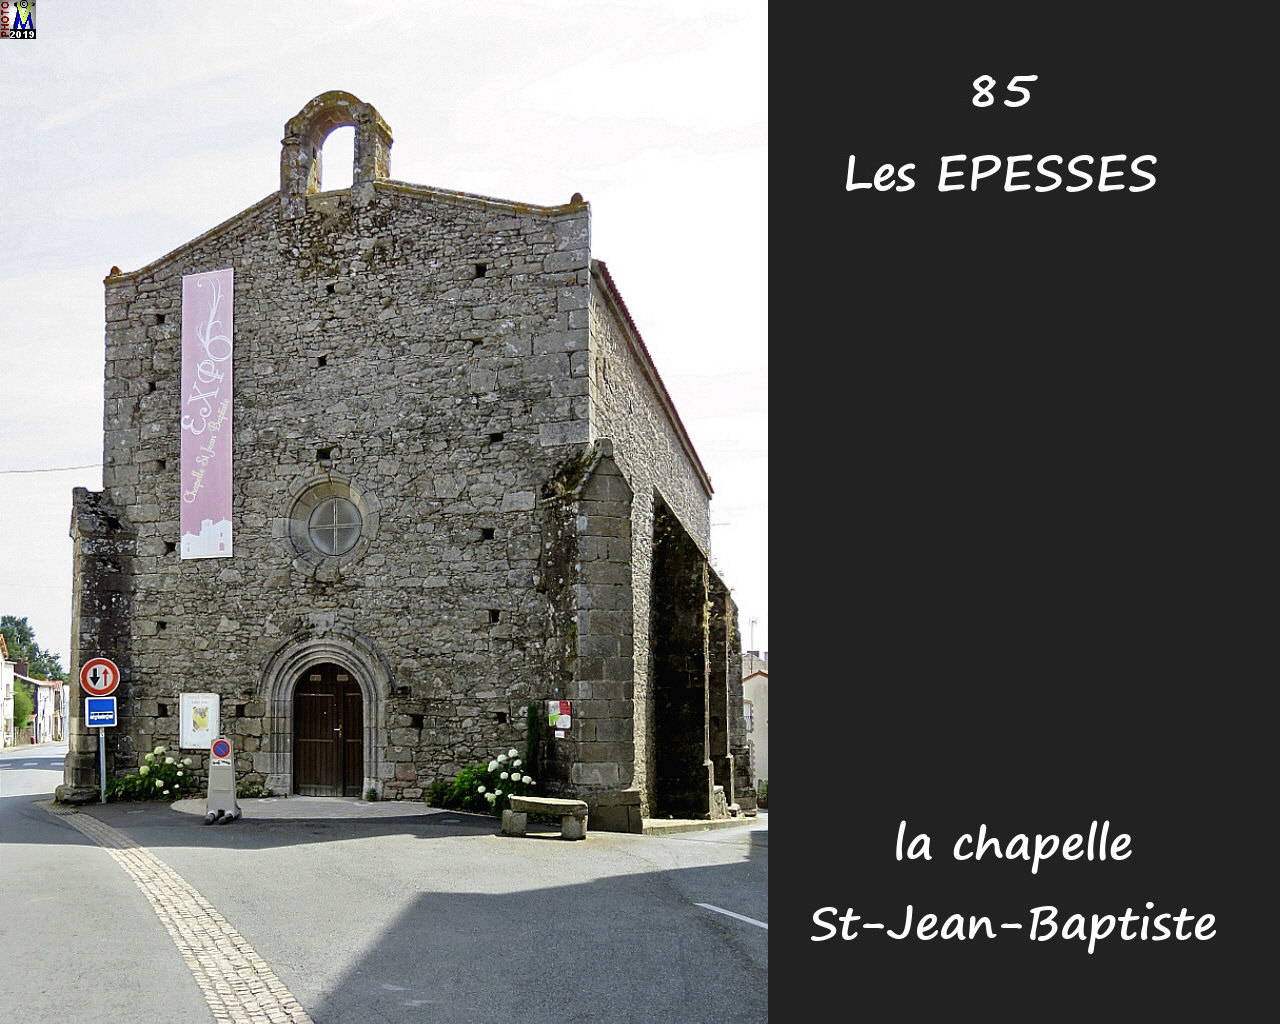 85EPESSES_chapelle_1000.jpg